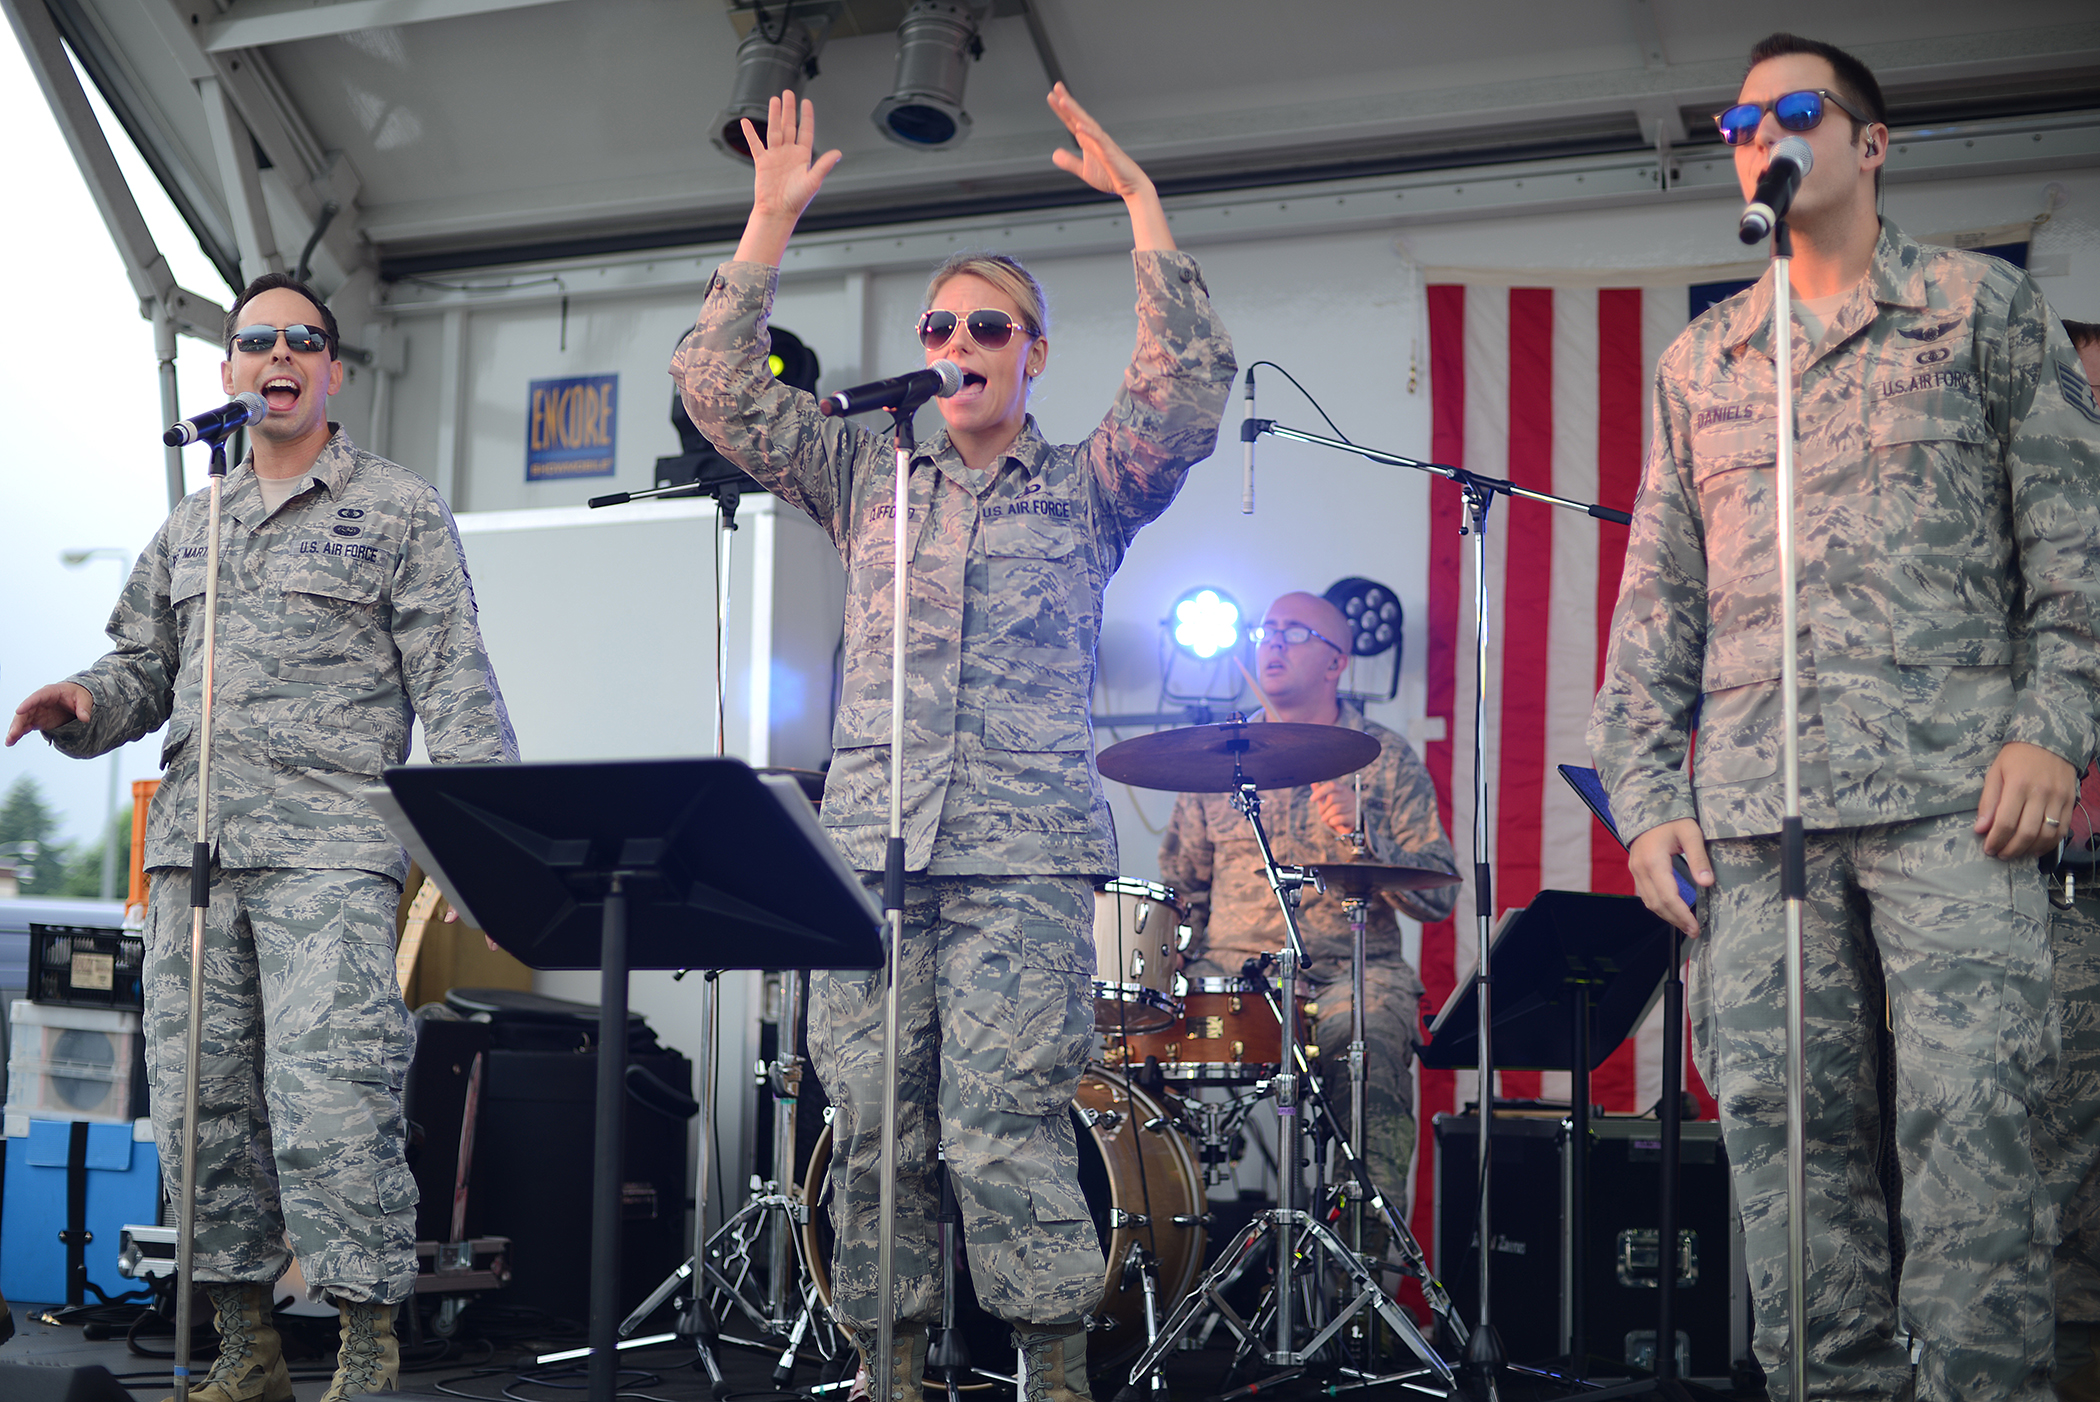 The Band of the Pacific-Hawaii music group, 'Hana Hou!', performs during the Celebrate America event at Yokota Air Base, Japan, July 2, 2015. The group played both English and Japanese songs, honoring the host nation's contributions toward this Independence Day event. (U.S. Air Force photo by Airman 1st Class David C. Danford/Released)